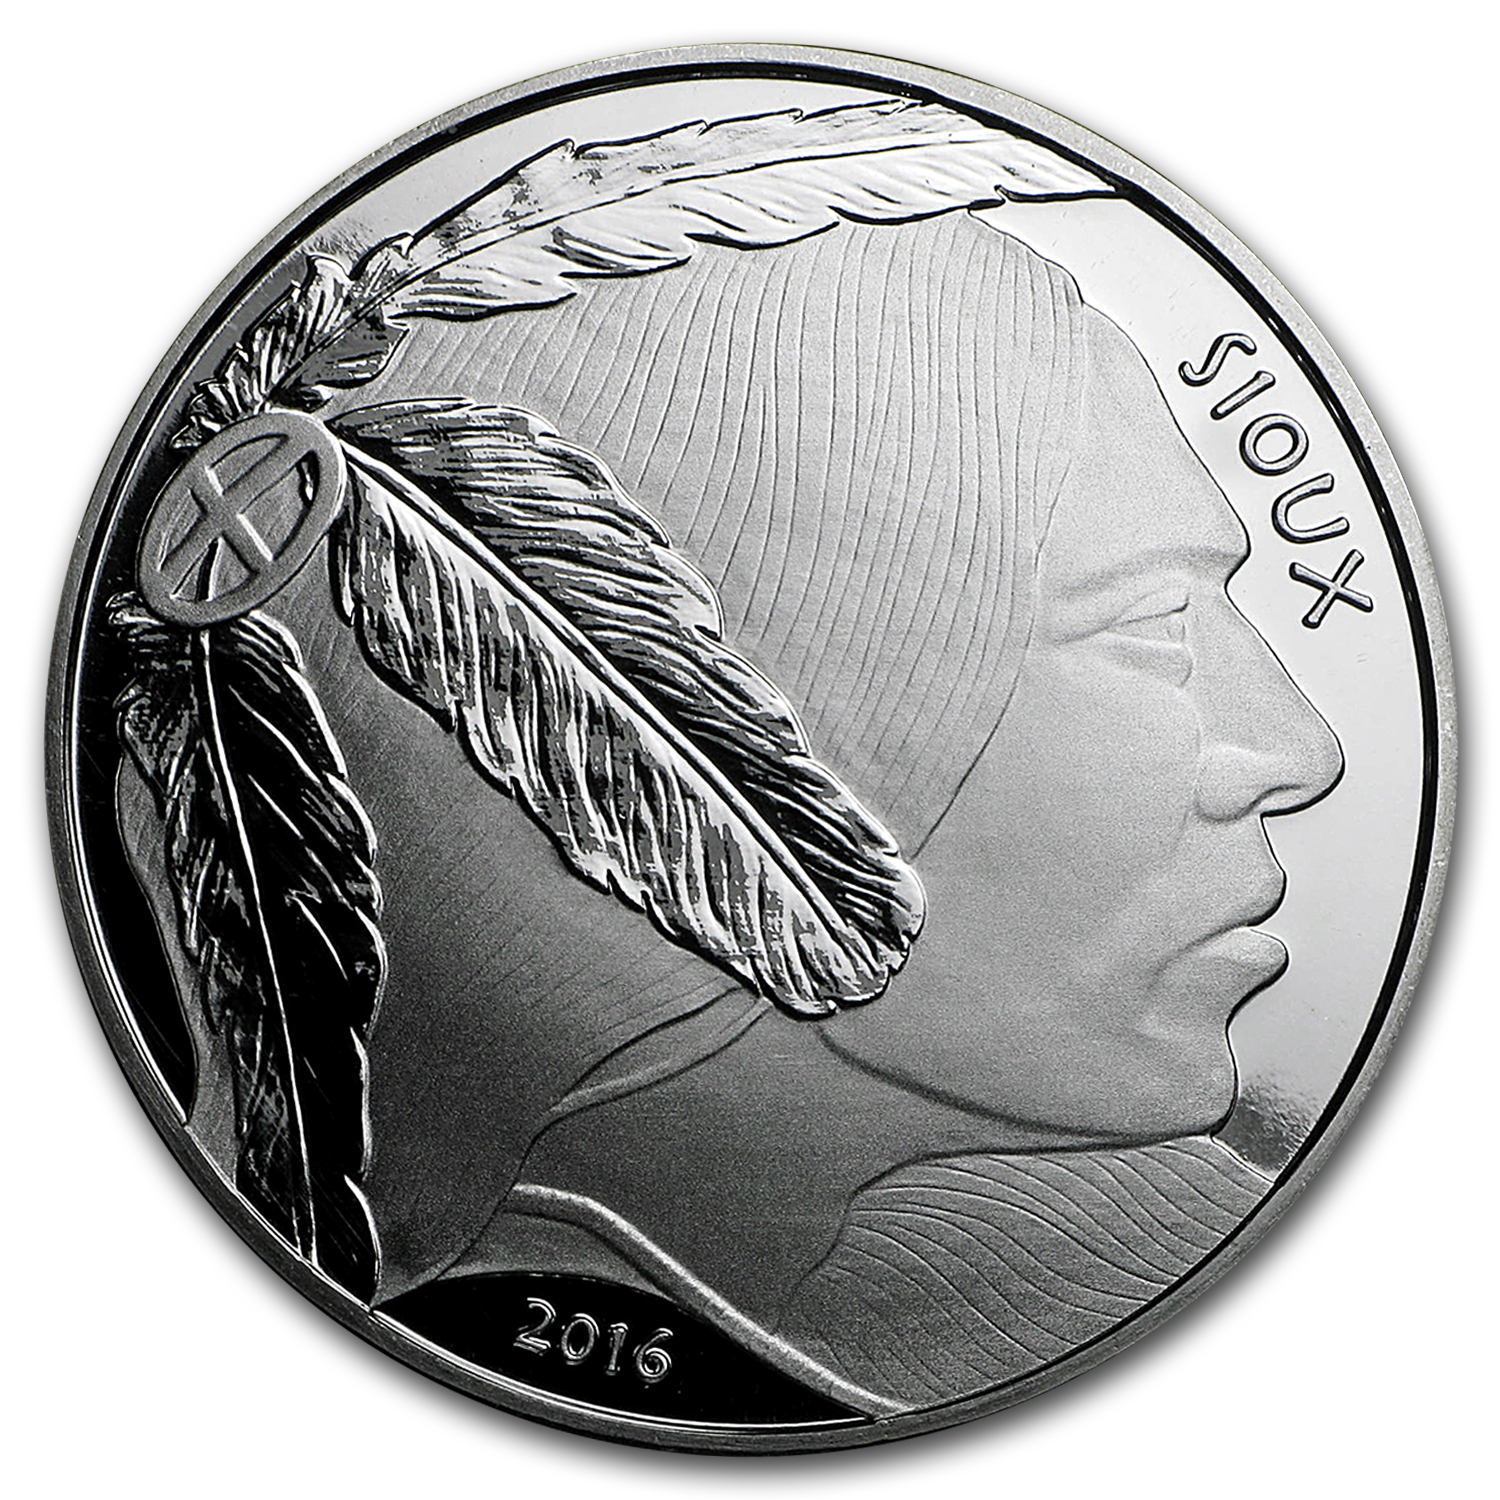 2016 1 oz Silver Native American Mint $1 Sioux Indian